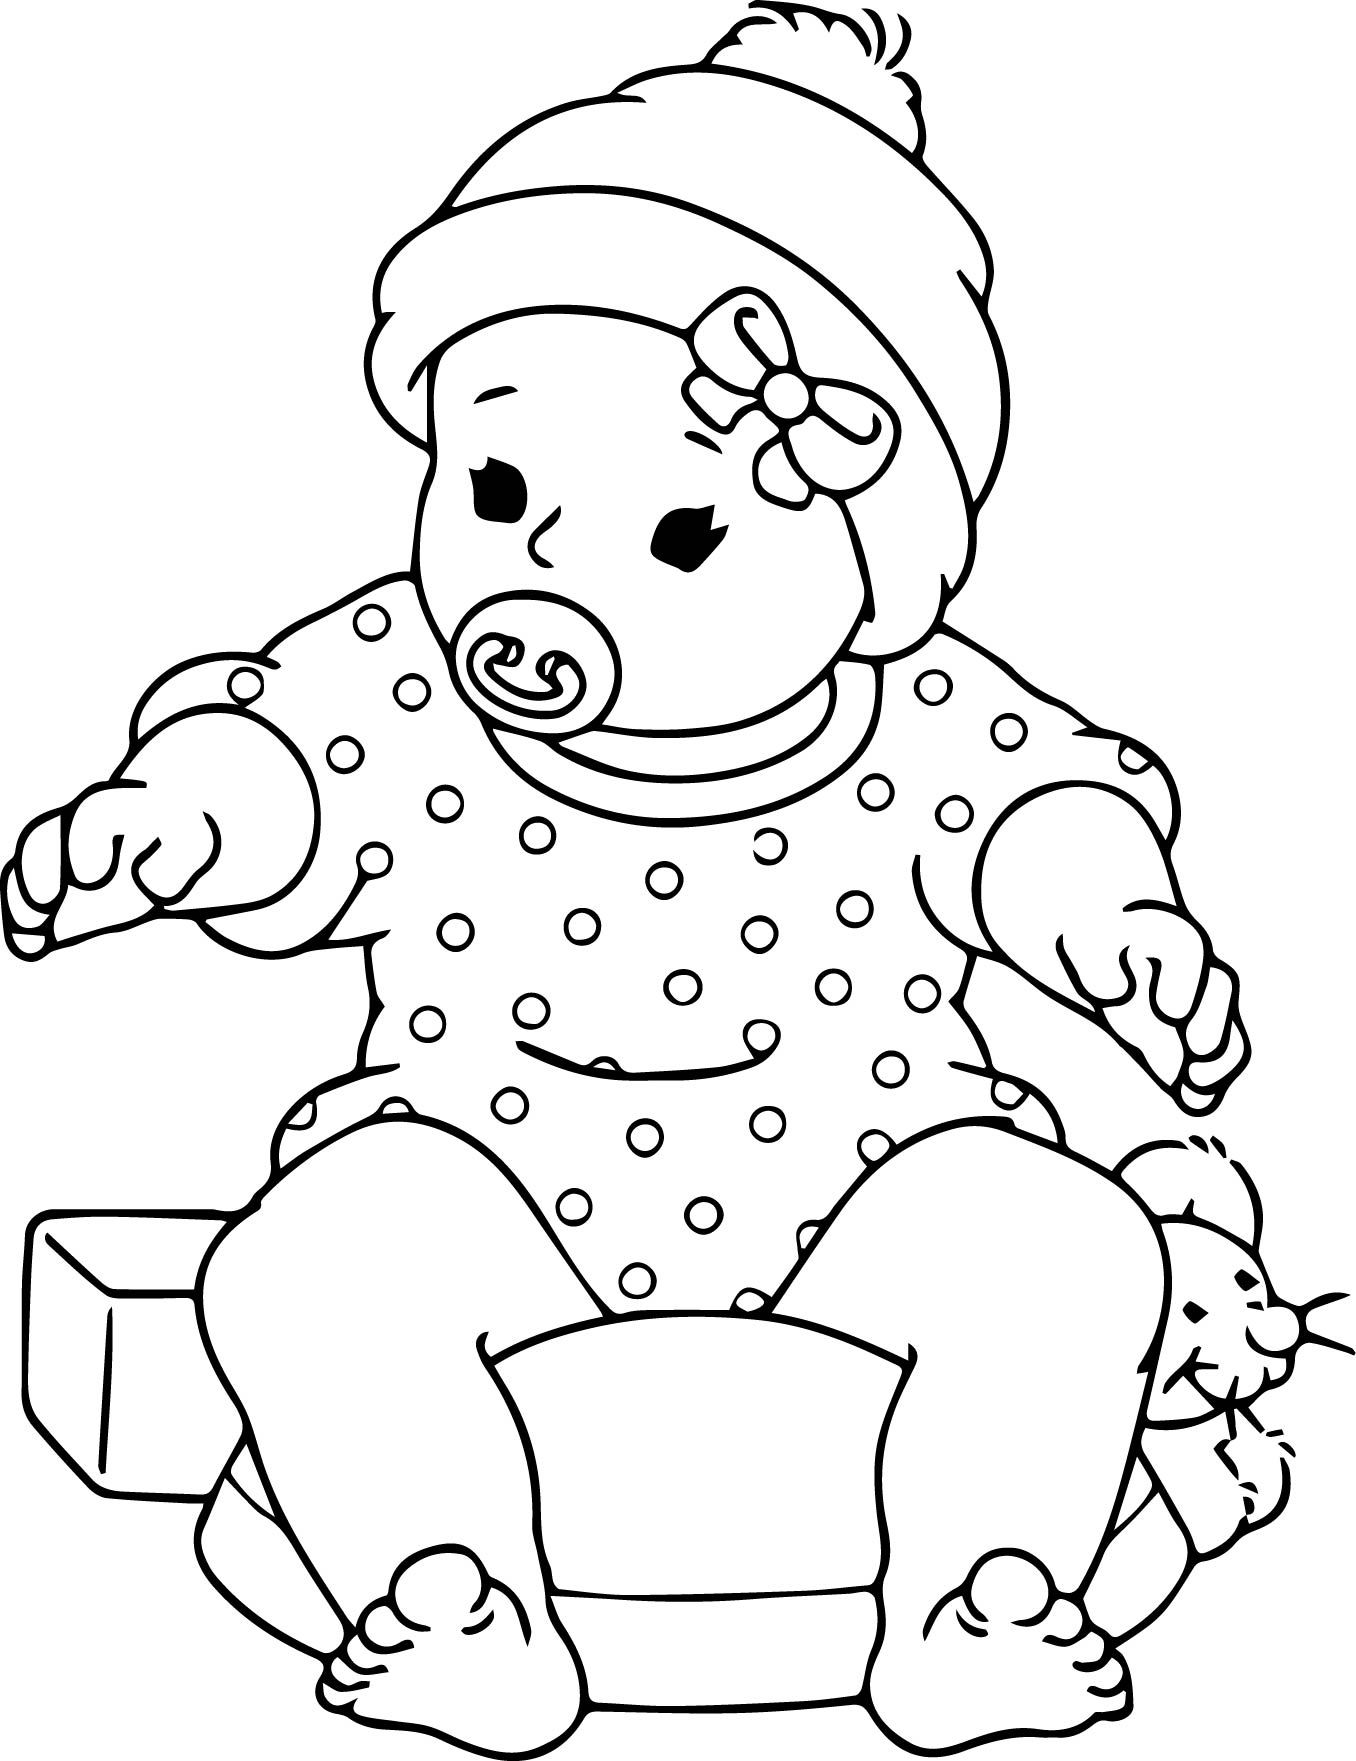 coloring pages dolls - photo#8